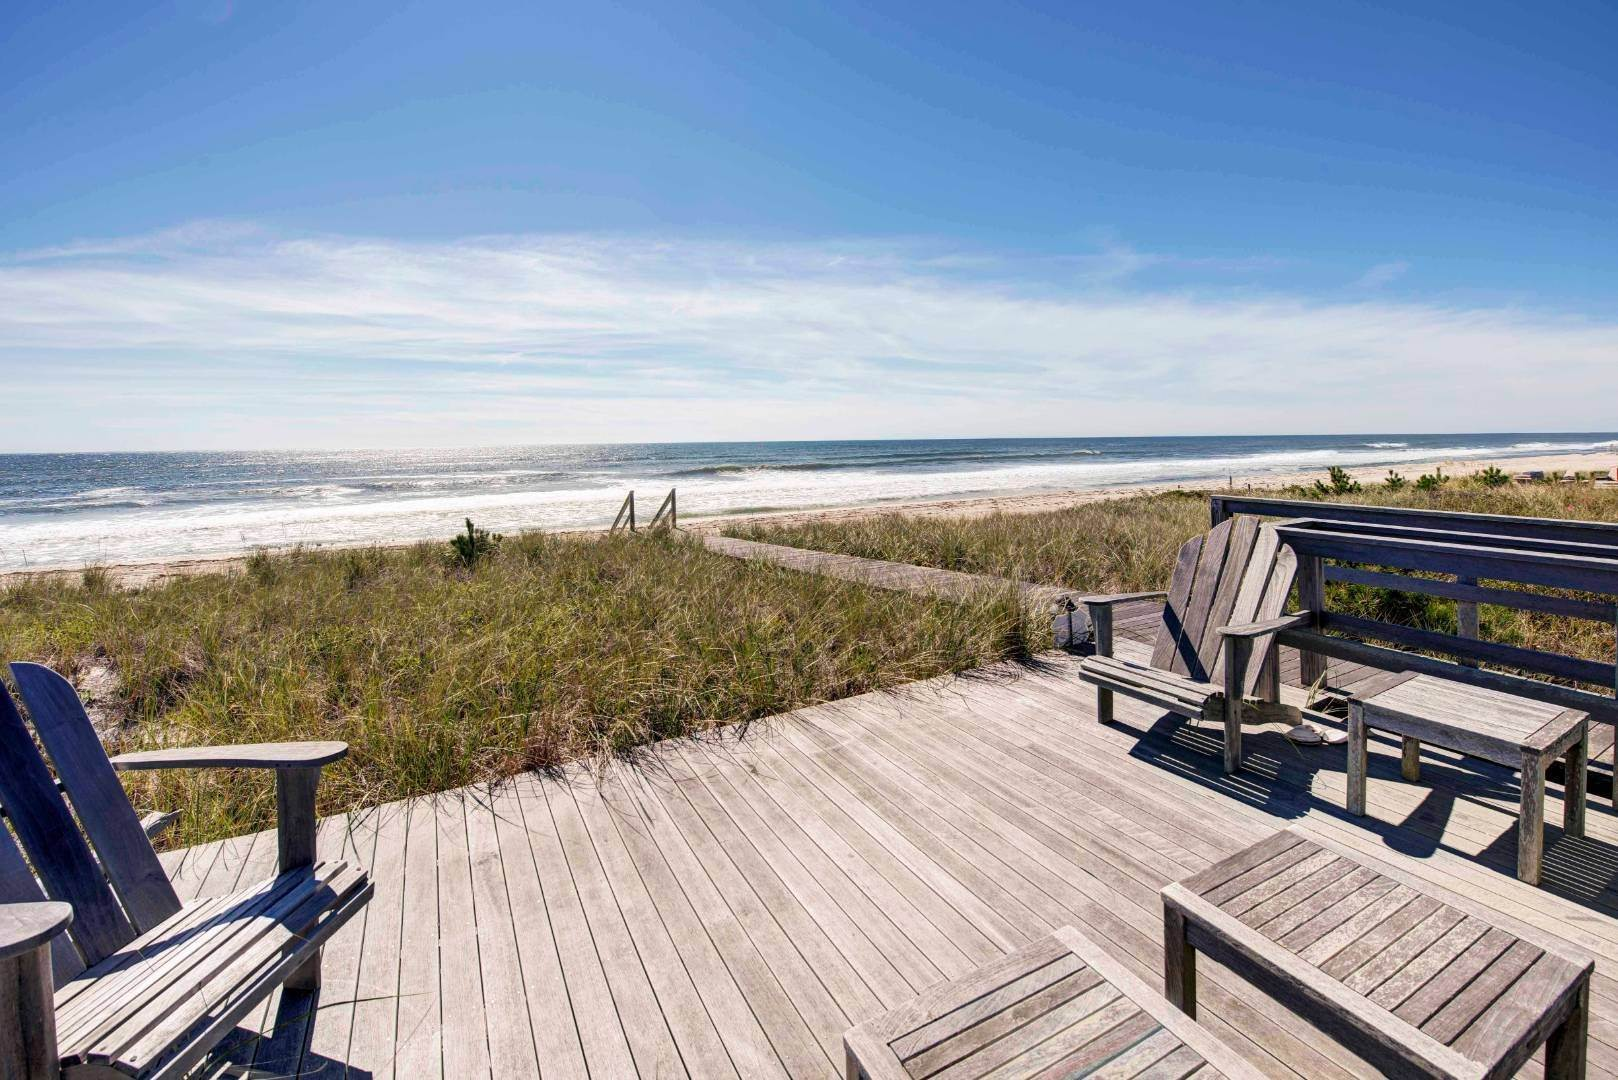 Single Family Home pour l Vente à Luxury Quogue Oceanfront 148 Dune Rd, Quogue Village, NY 11959